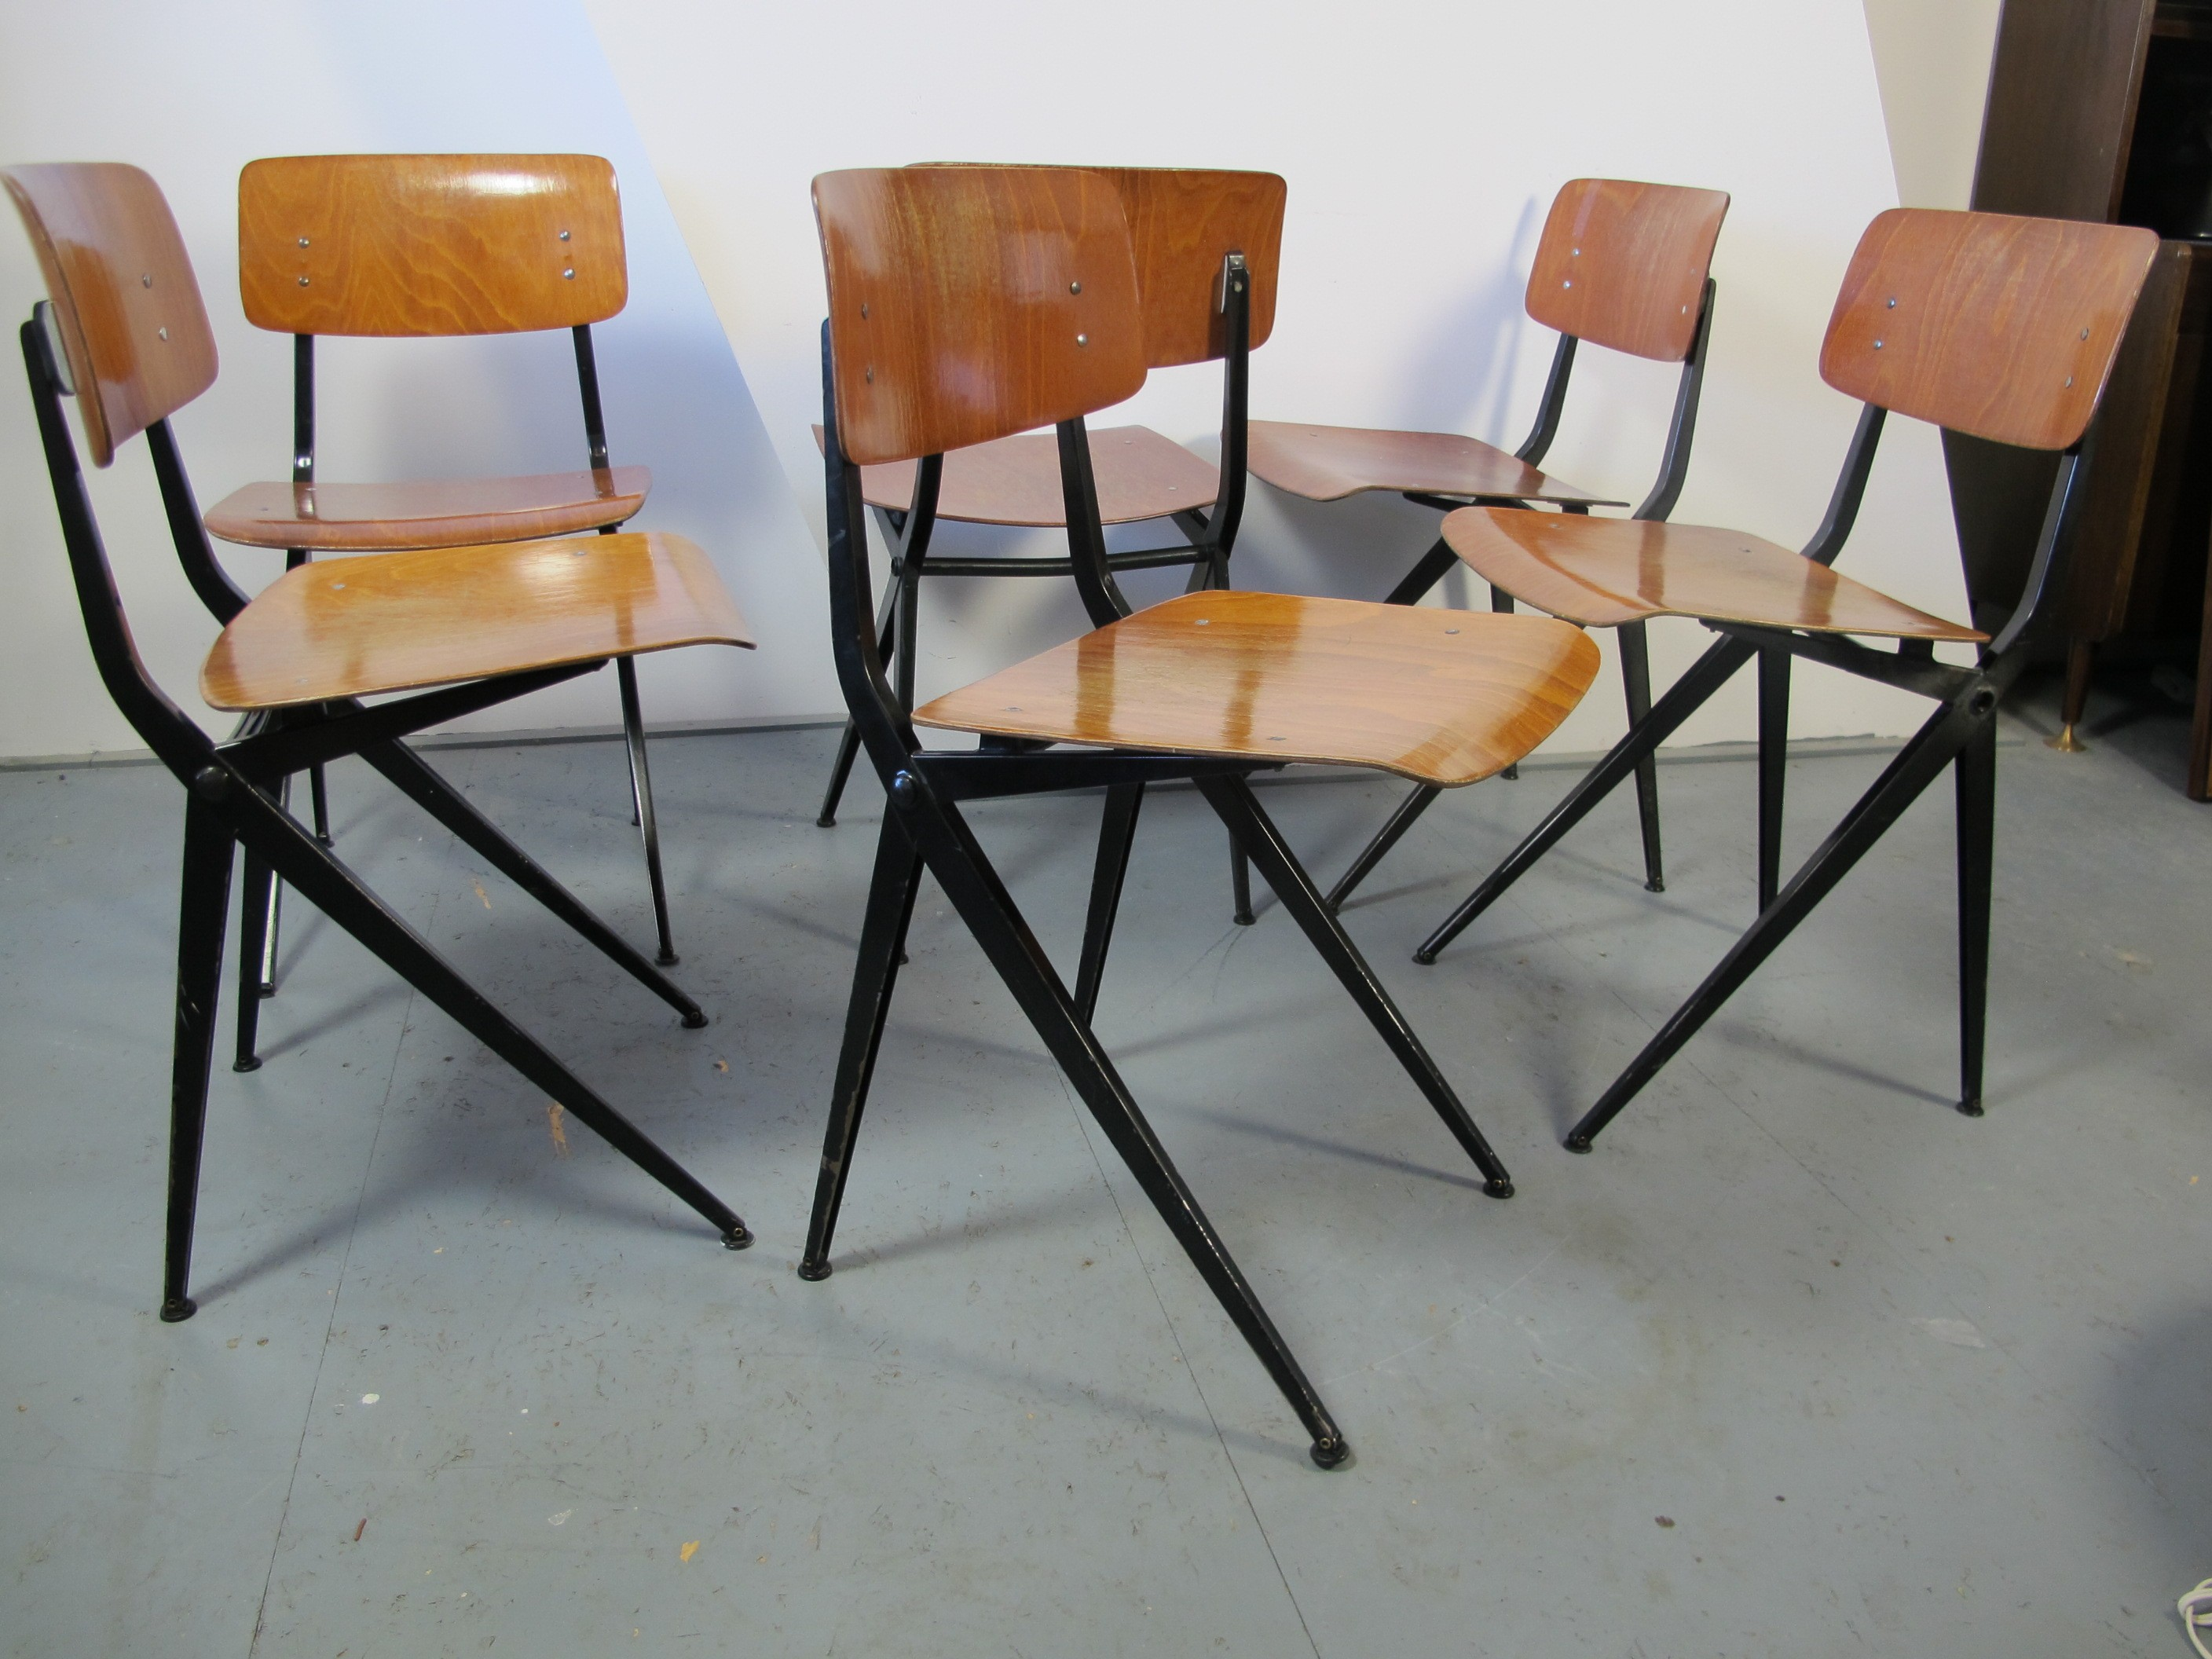 A set of 6 mid century industrial dining chairs by Ynske Kooistra